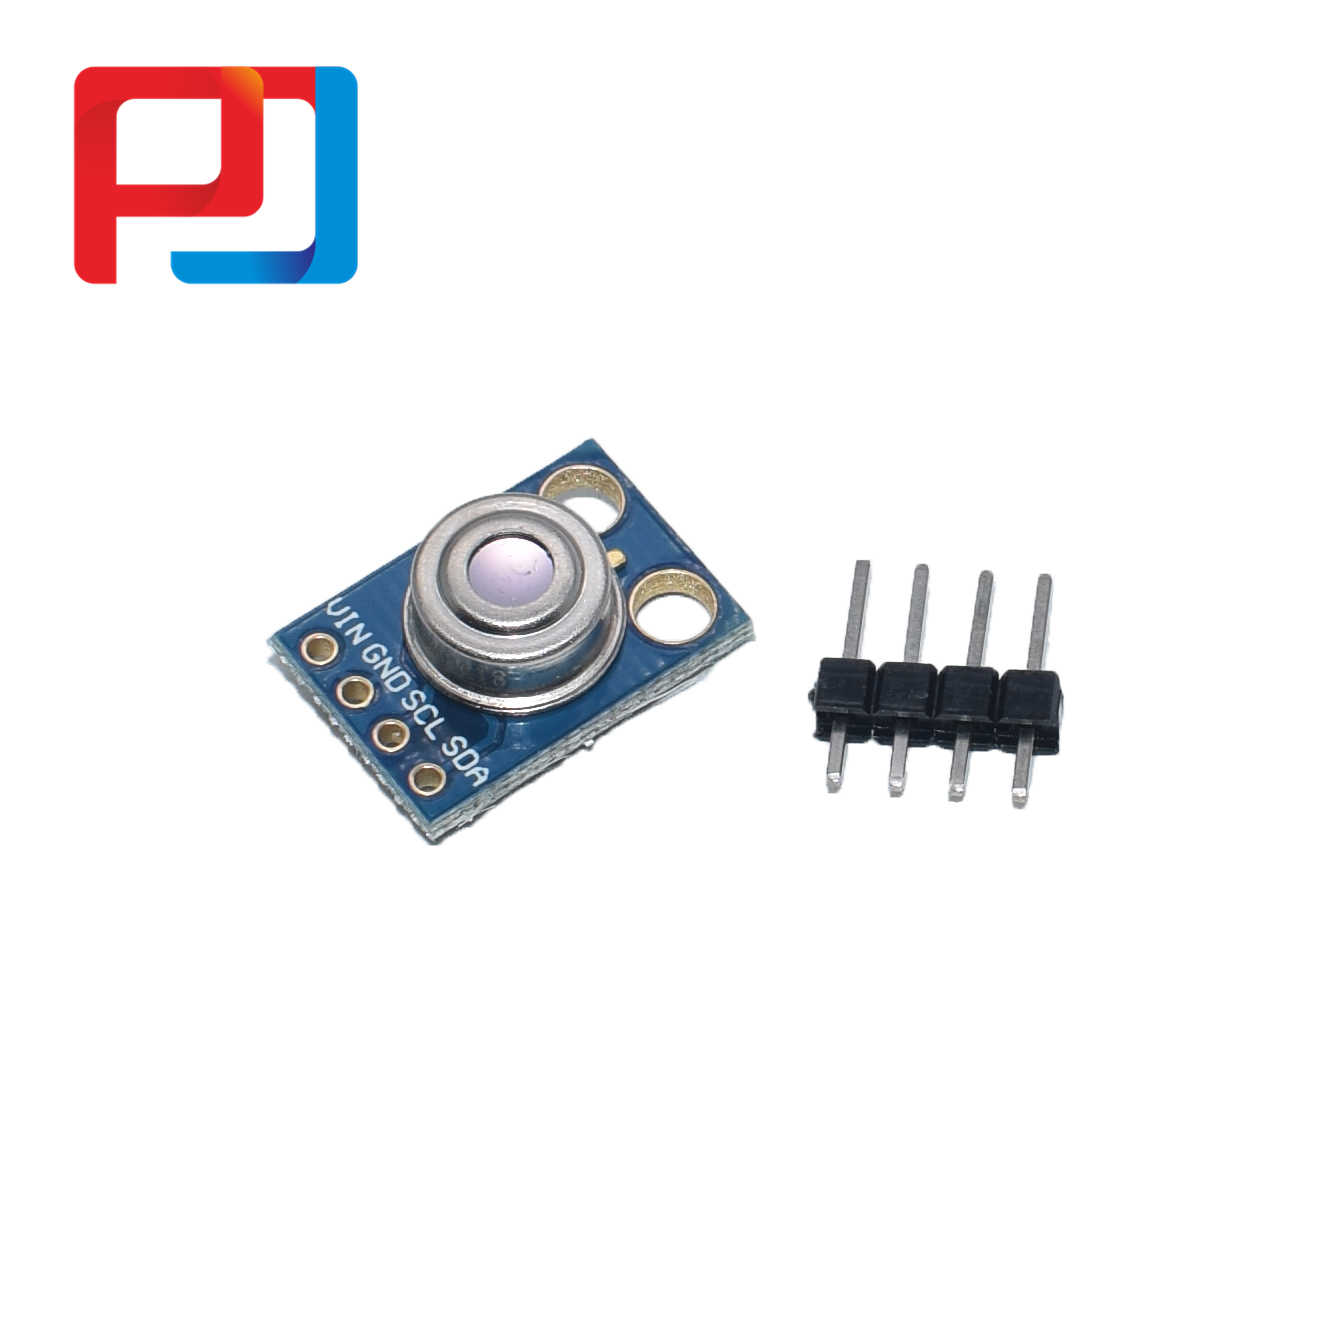 1PCS MLX90614 Contactless Temperature Sensor Module For Arduino Compatible